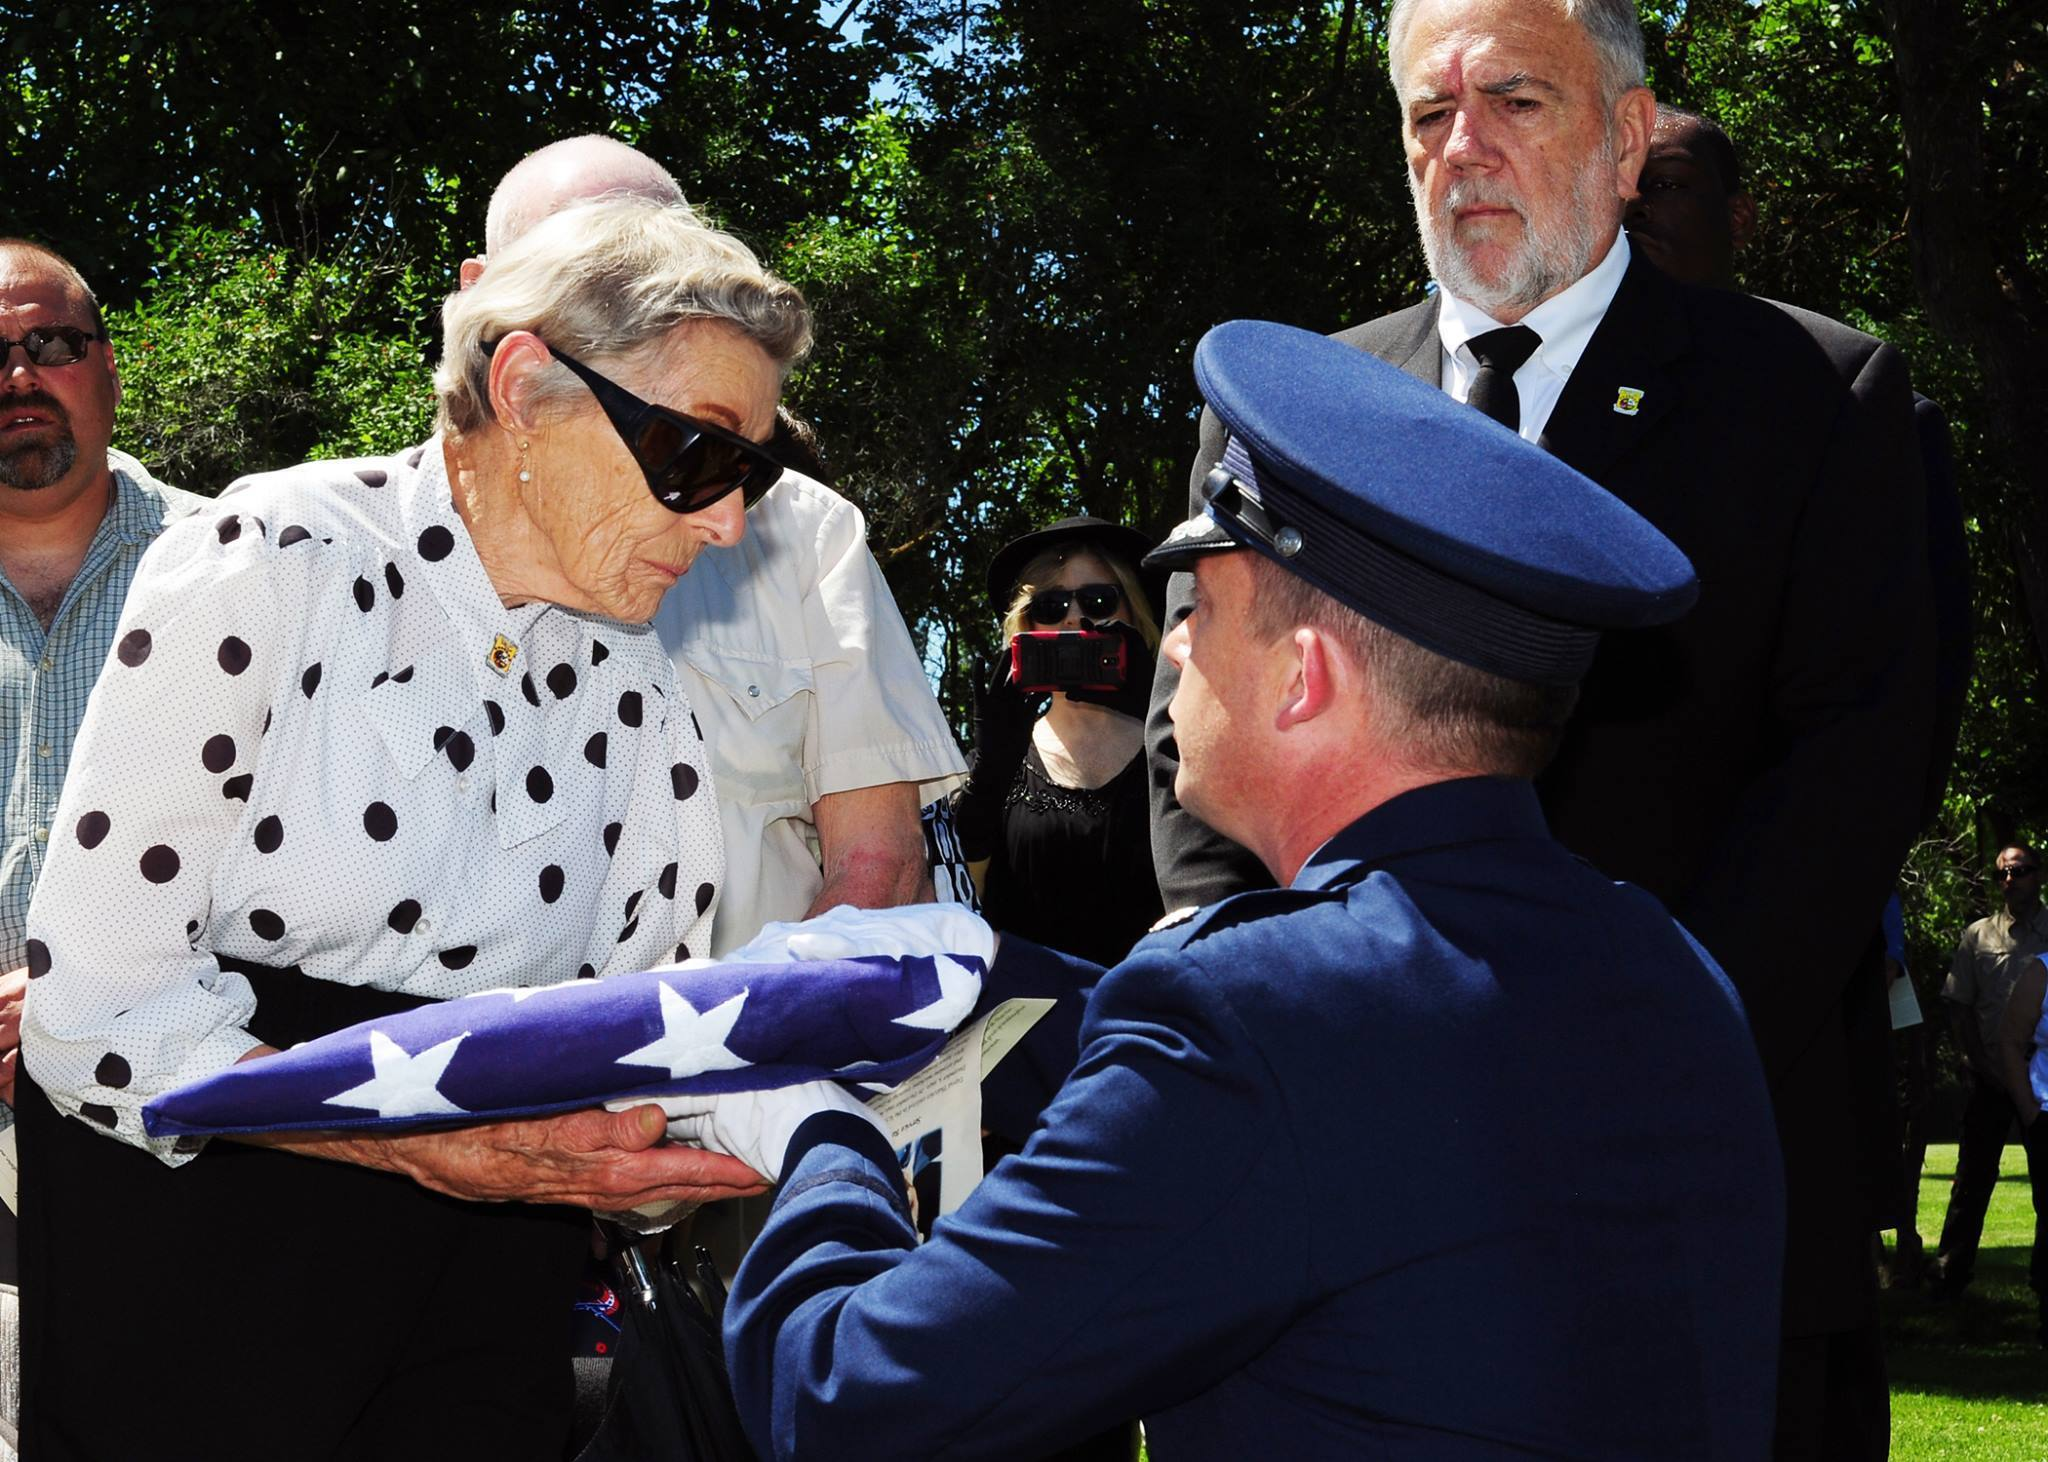 Lt. Col. Michael Epper, 341st Force Support Squadron commander, presents the flag to Dawn Thatcher, wife of Staff Sgt. David J. Thatcher, during a funeral service June 27 in Missoula, Mont. At 20 years old, Sgt. Thatcher was an engineer gunner in Flight Crew 7 of the Doolittle Tokyo Raids. His crew crash-landed into sea off the coast of China on April 18, 1942. Thatcher saved four members of the crew by pulling them to safety on the surrounding beach and applying life-saving medical treatment, even though he was injured himself. (U.S. Air Force photo by 2nd Lt. Annabel Monroe)